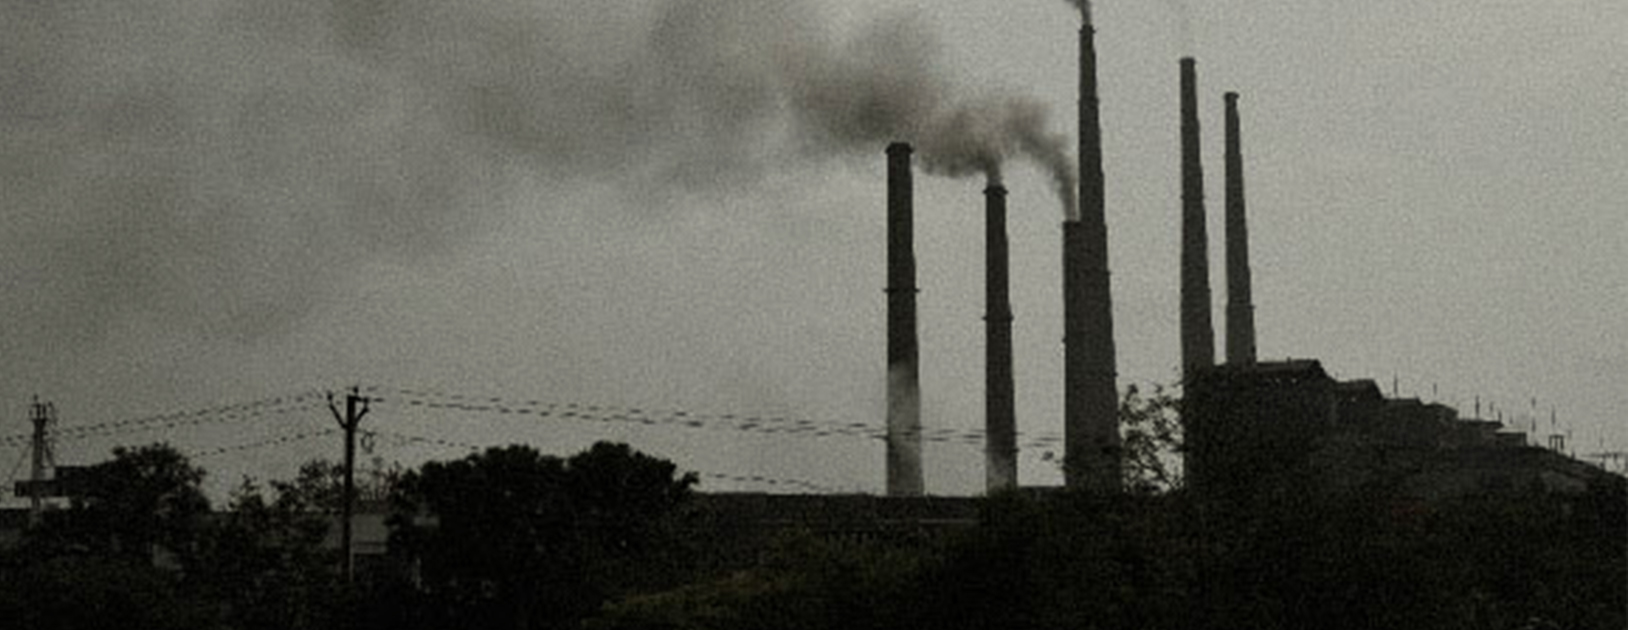 Air Pollution From Thermal Power Plants In India Centre For Policy 500 Mw Plant Diagram